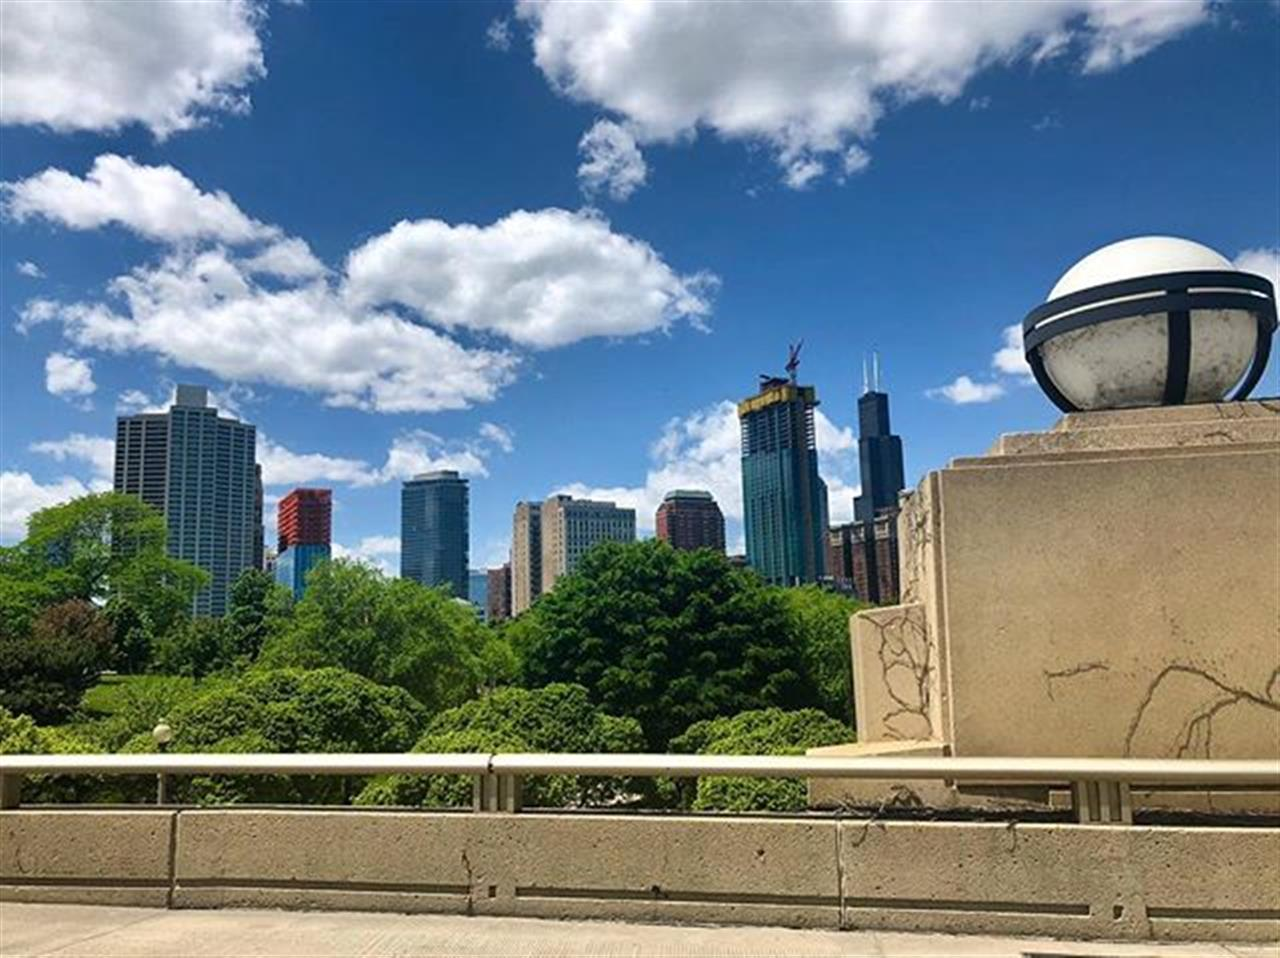 Snapping pictures down #LakeShoreDrive on this sunny #Sunday. .. .. #chicagorealestate #chicago #sunshine #illinoisrealestate #southloop #southlooprealestate #leadingrelocal #bairdwarner #architecture #grantpark